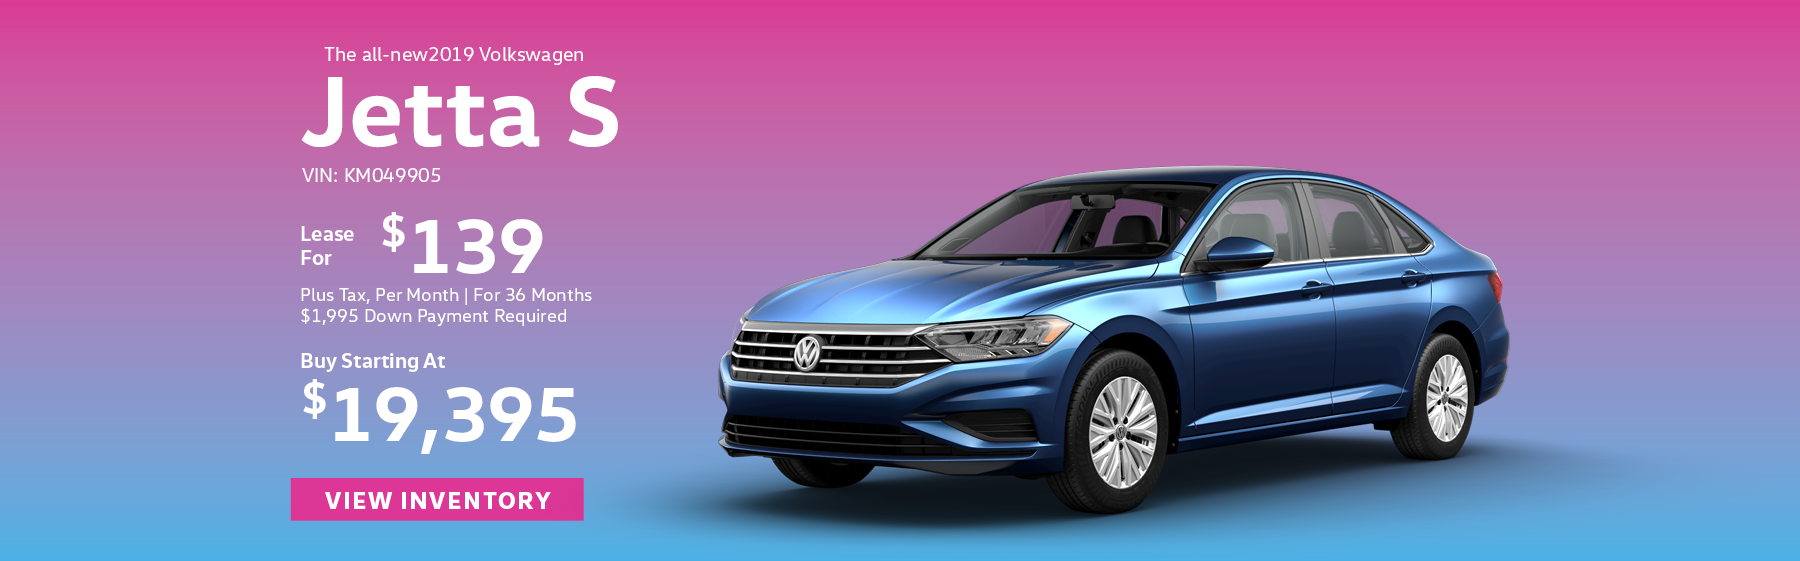 et the all-new 2019 Volkswagen Jetta S, starting at $19,395, or lease for $139 per month, plus tax for 36 months. Click here to view inventory.